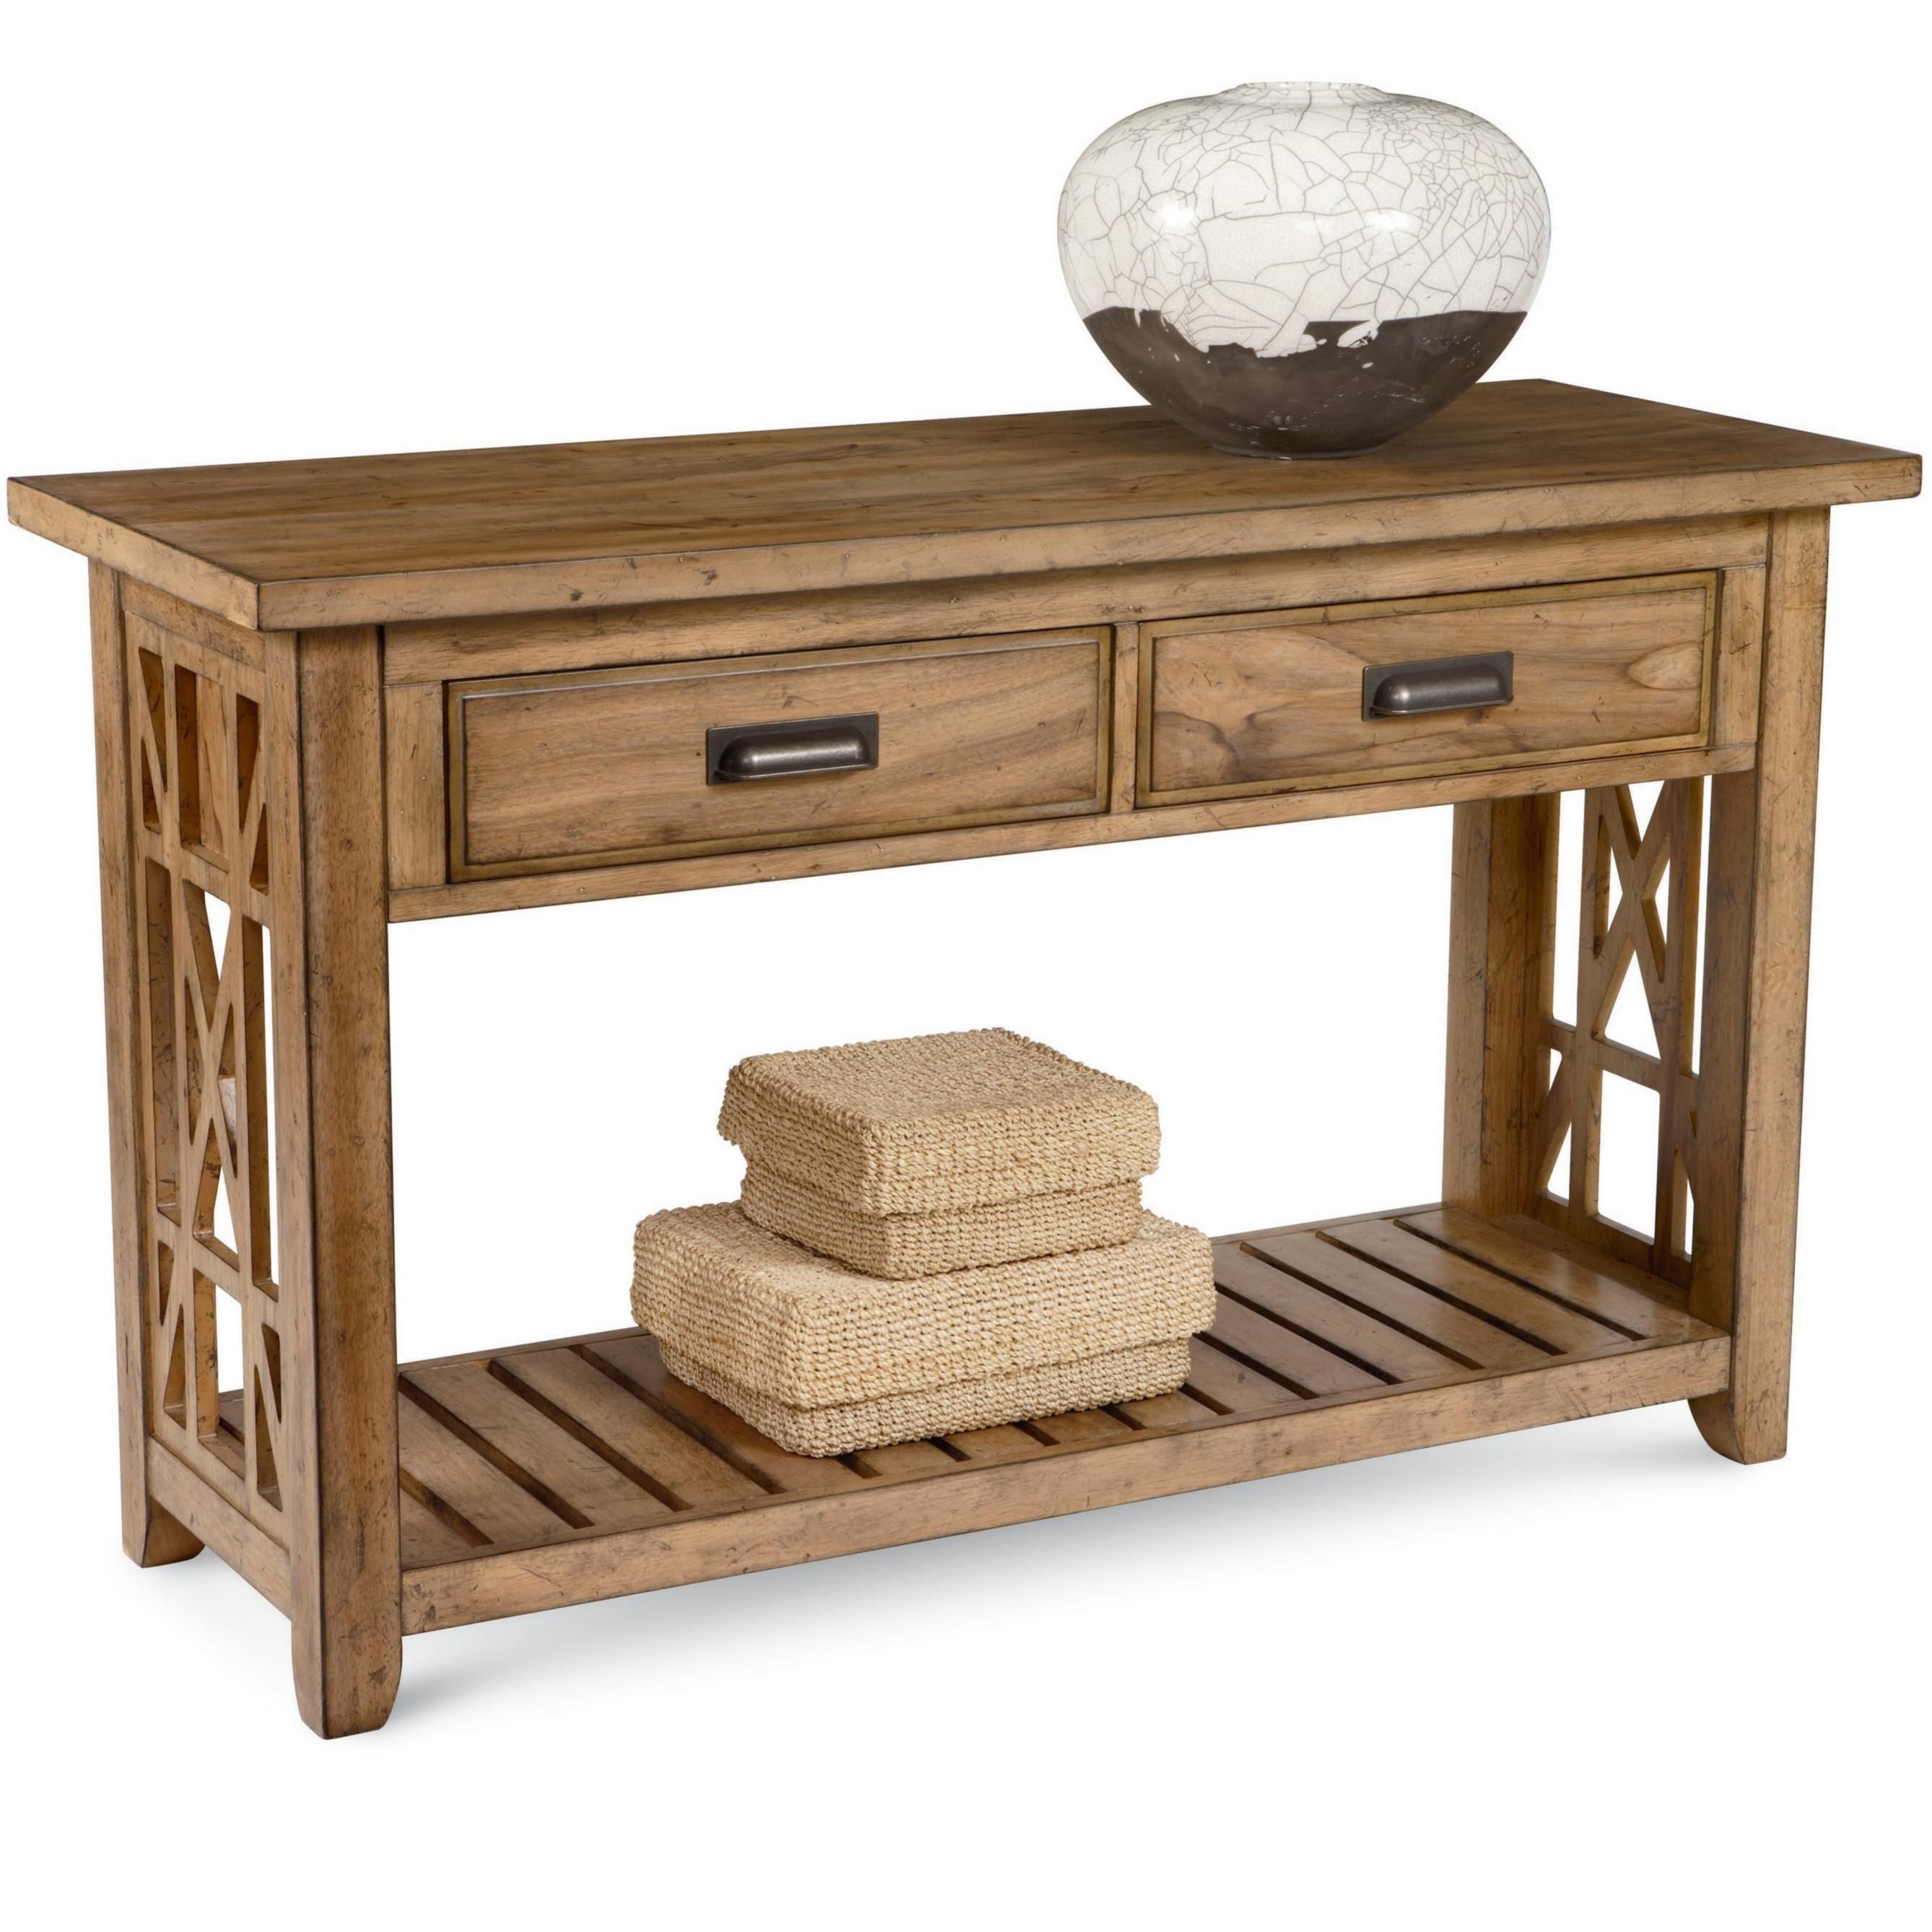 Frasier Console Table With 2 Drawers And Shelf By Broyhill Furniture At John V Schultz Furniture Furniture Broyhill Furniture Console Table